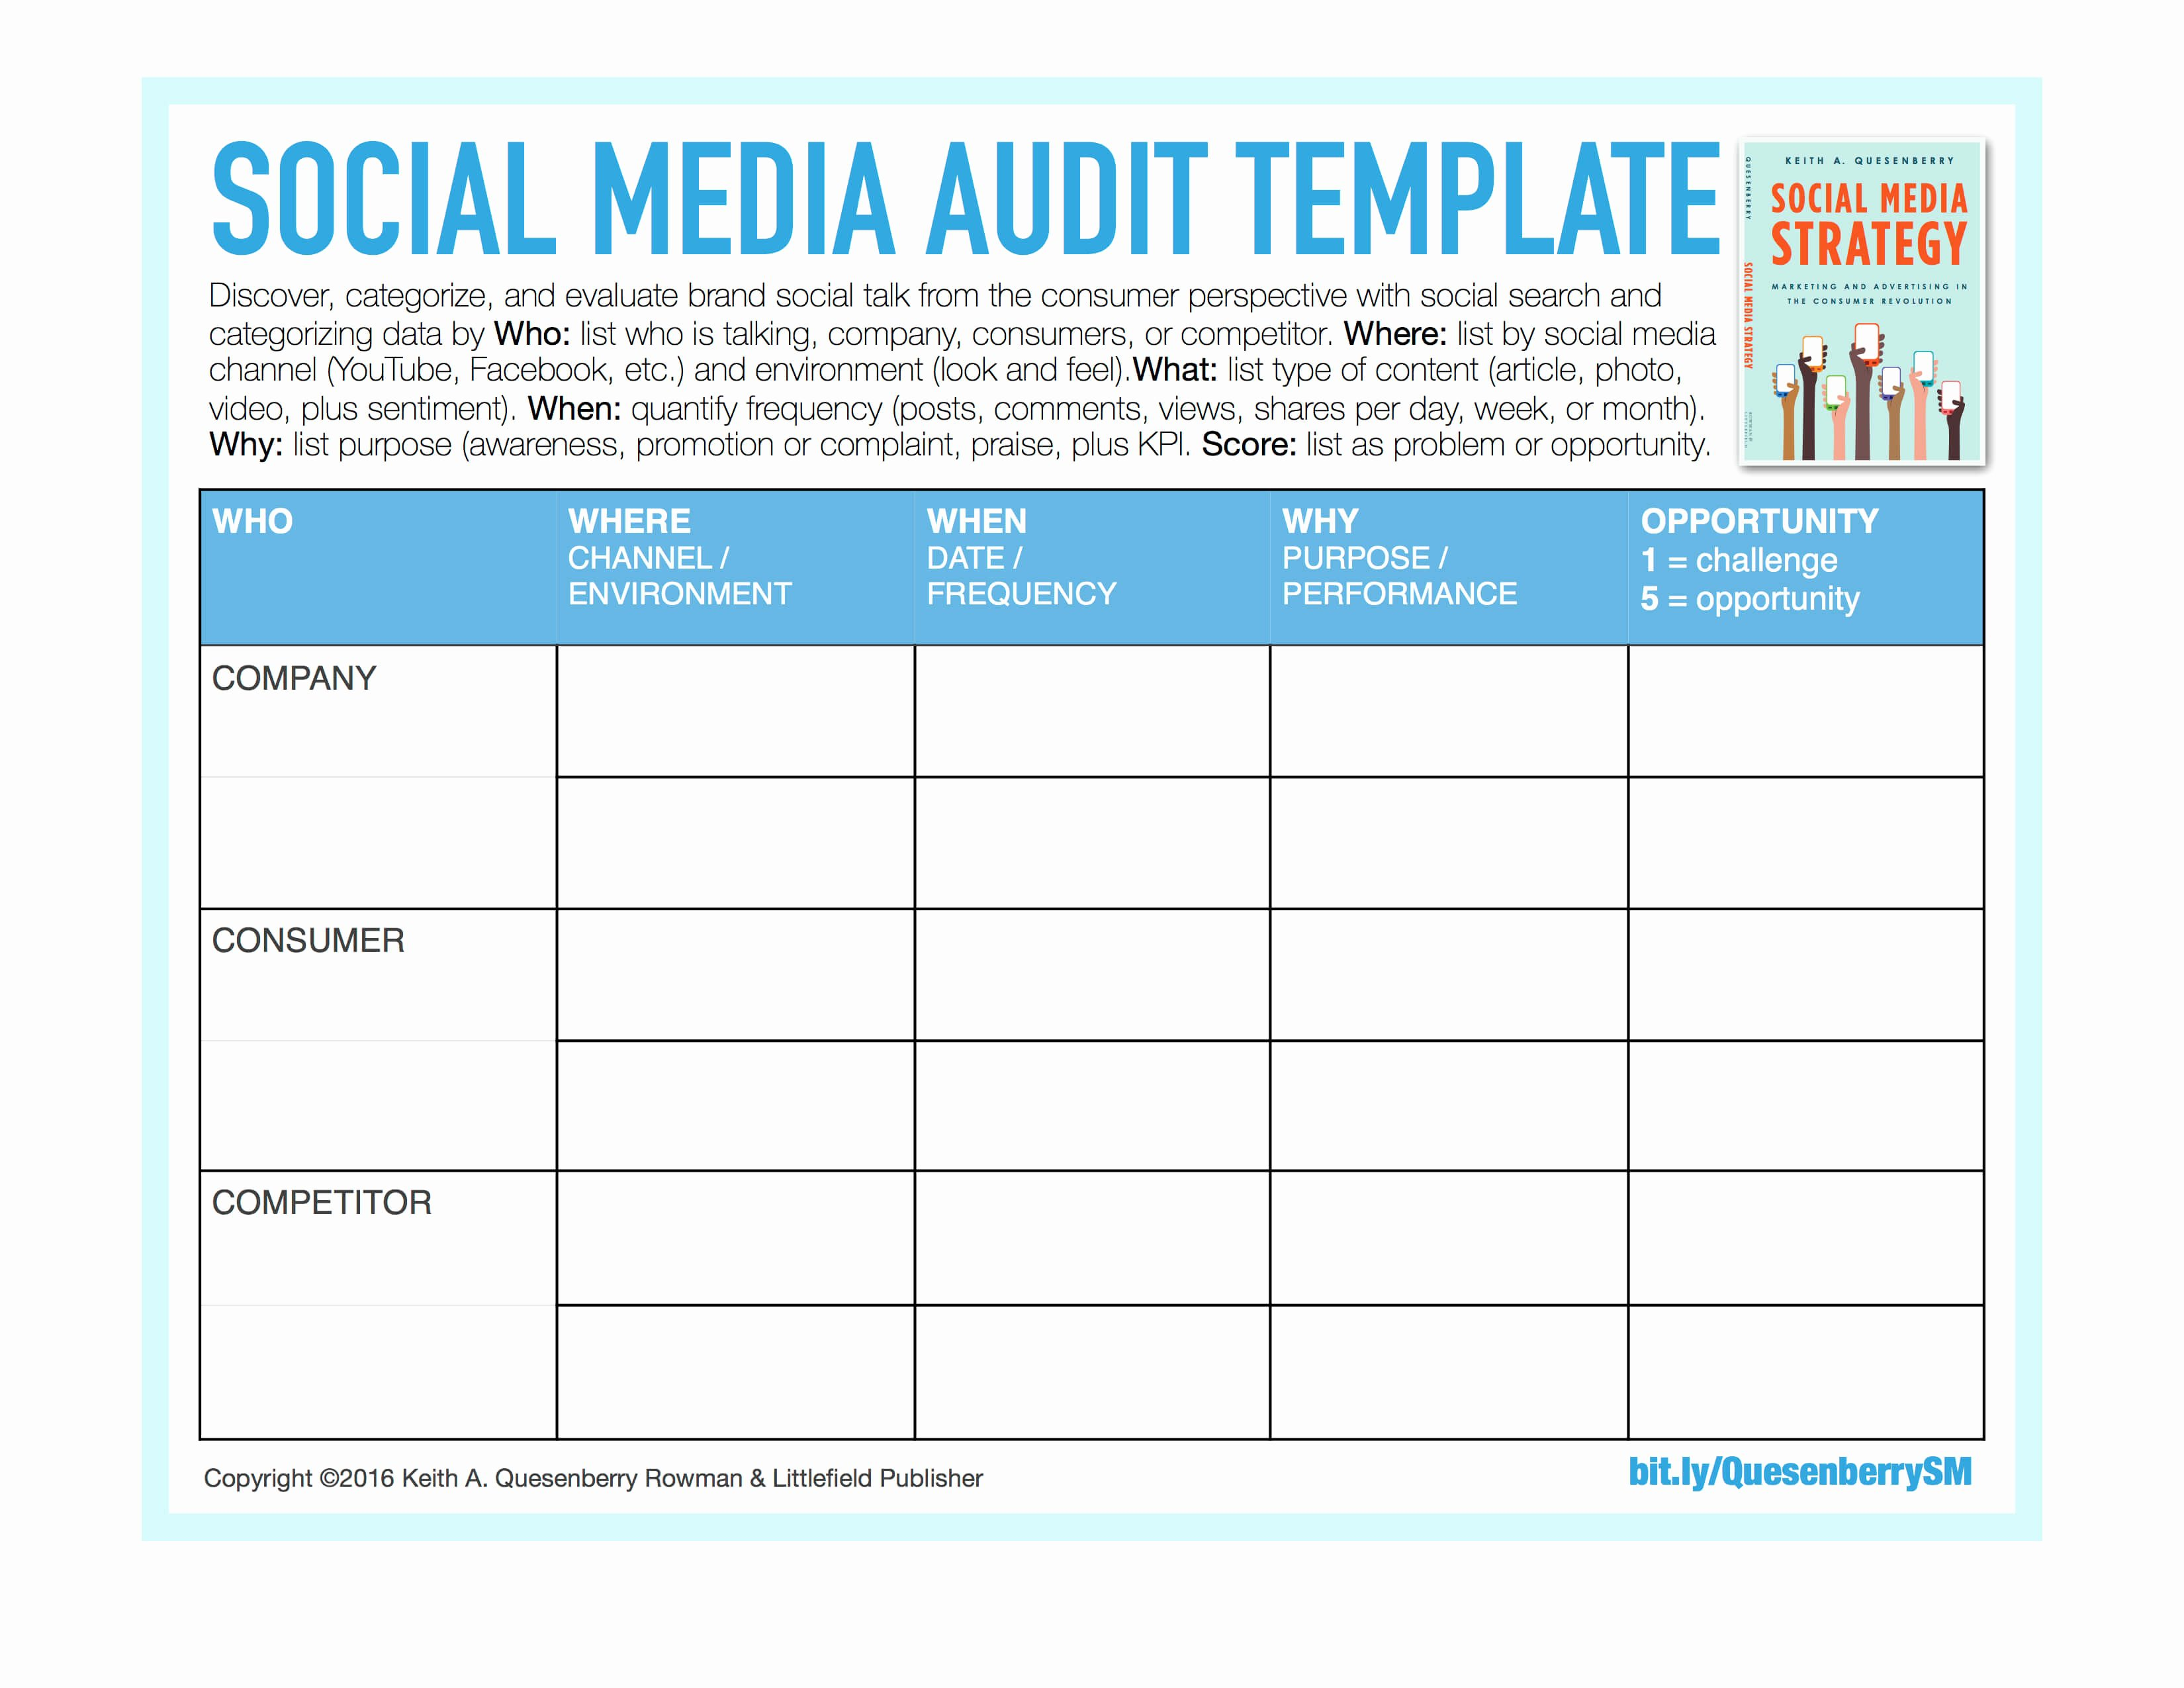 Audit Summary Template Unique social Media Templates Keith A Quesenberry